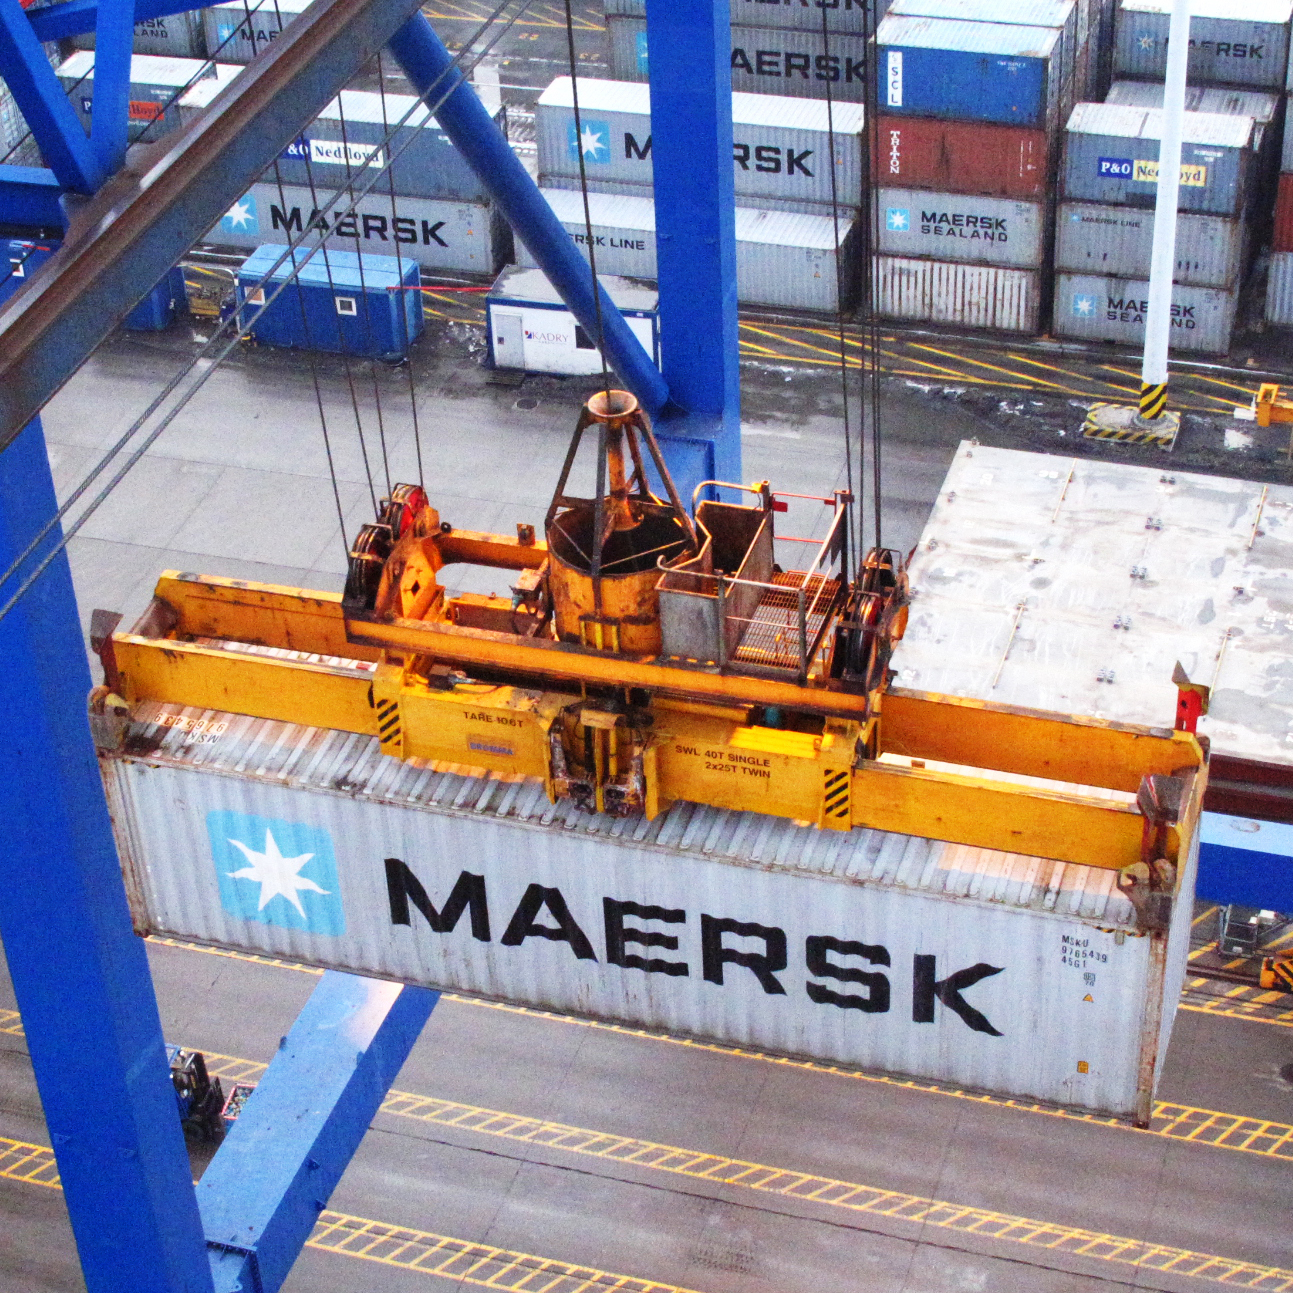 Huge cranes load containers, some weighing up to 25 tons, onto the Maersk McKinney Moller while it's in port in Gdansk, Poland.